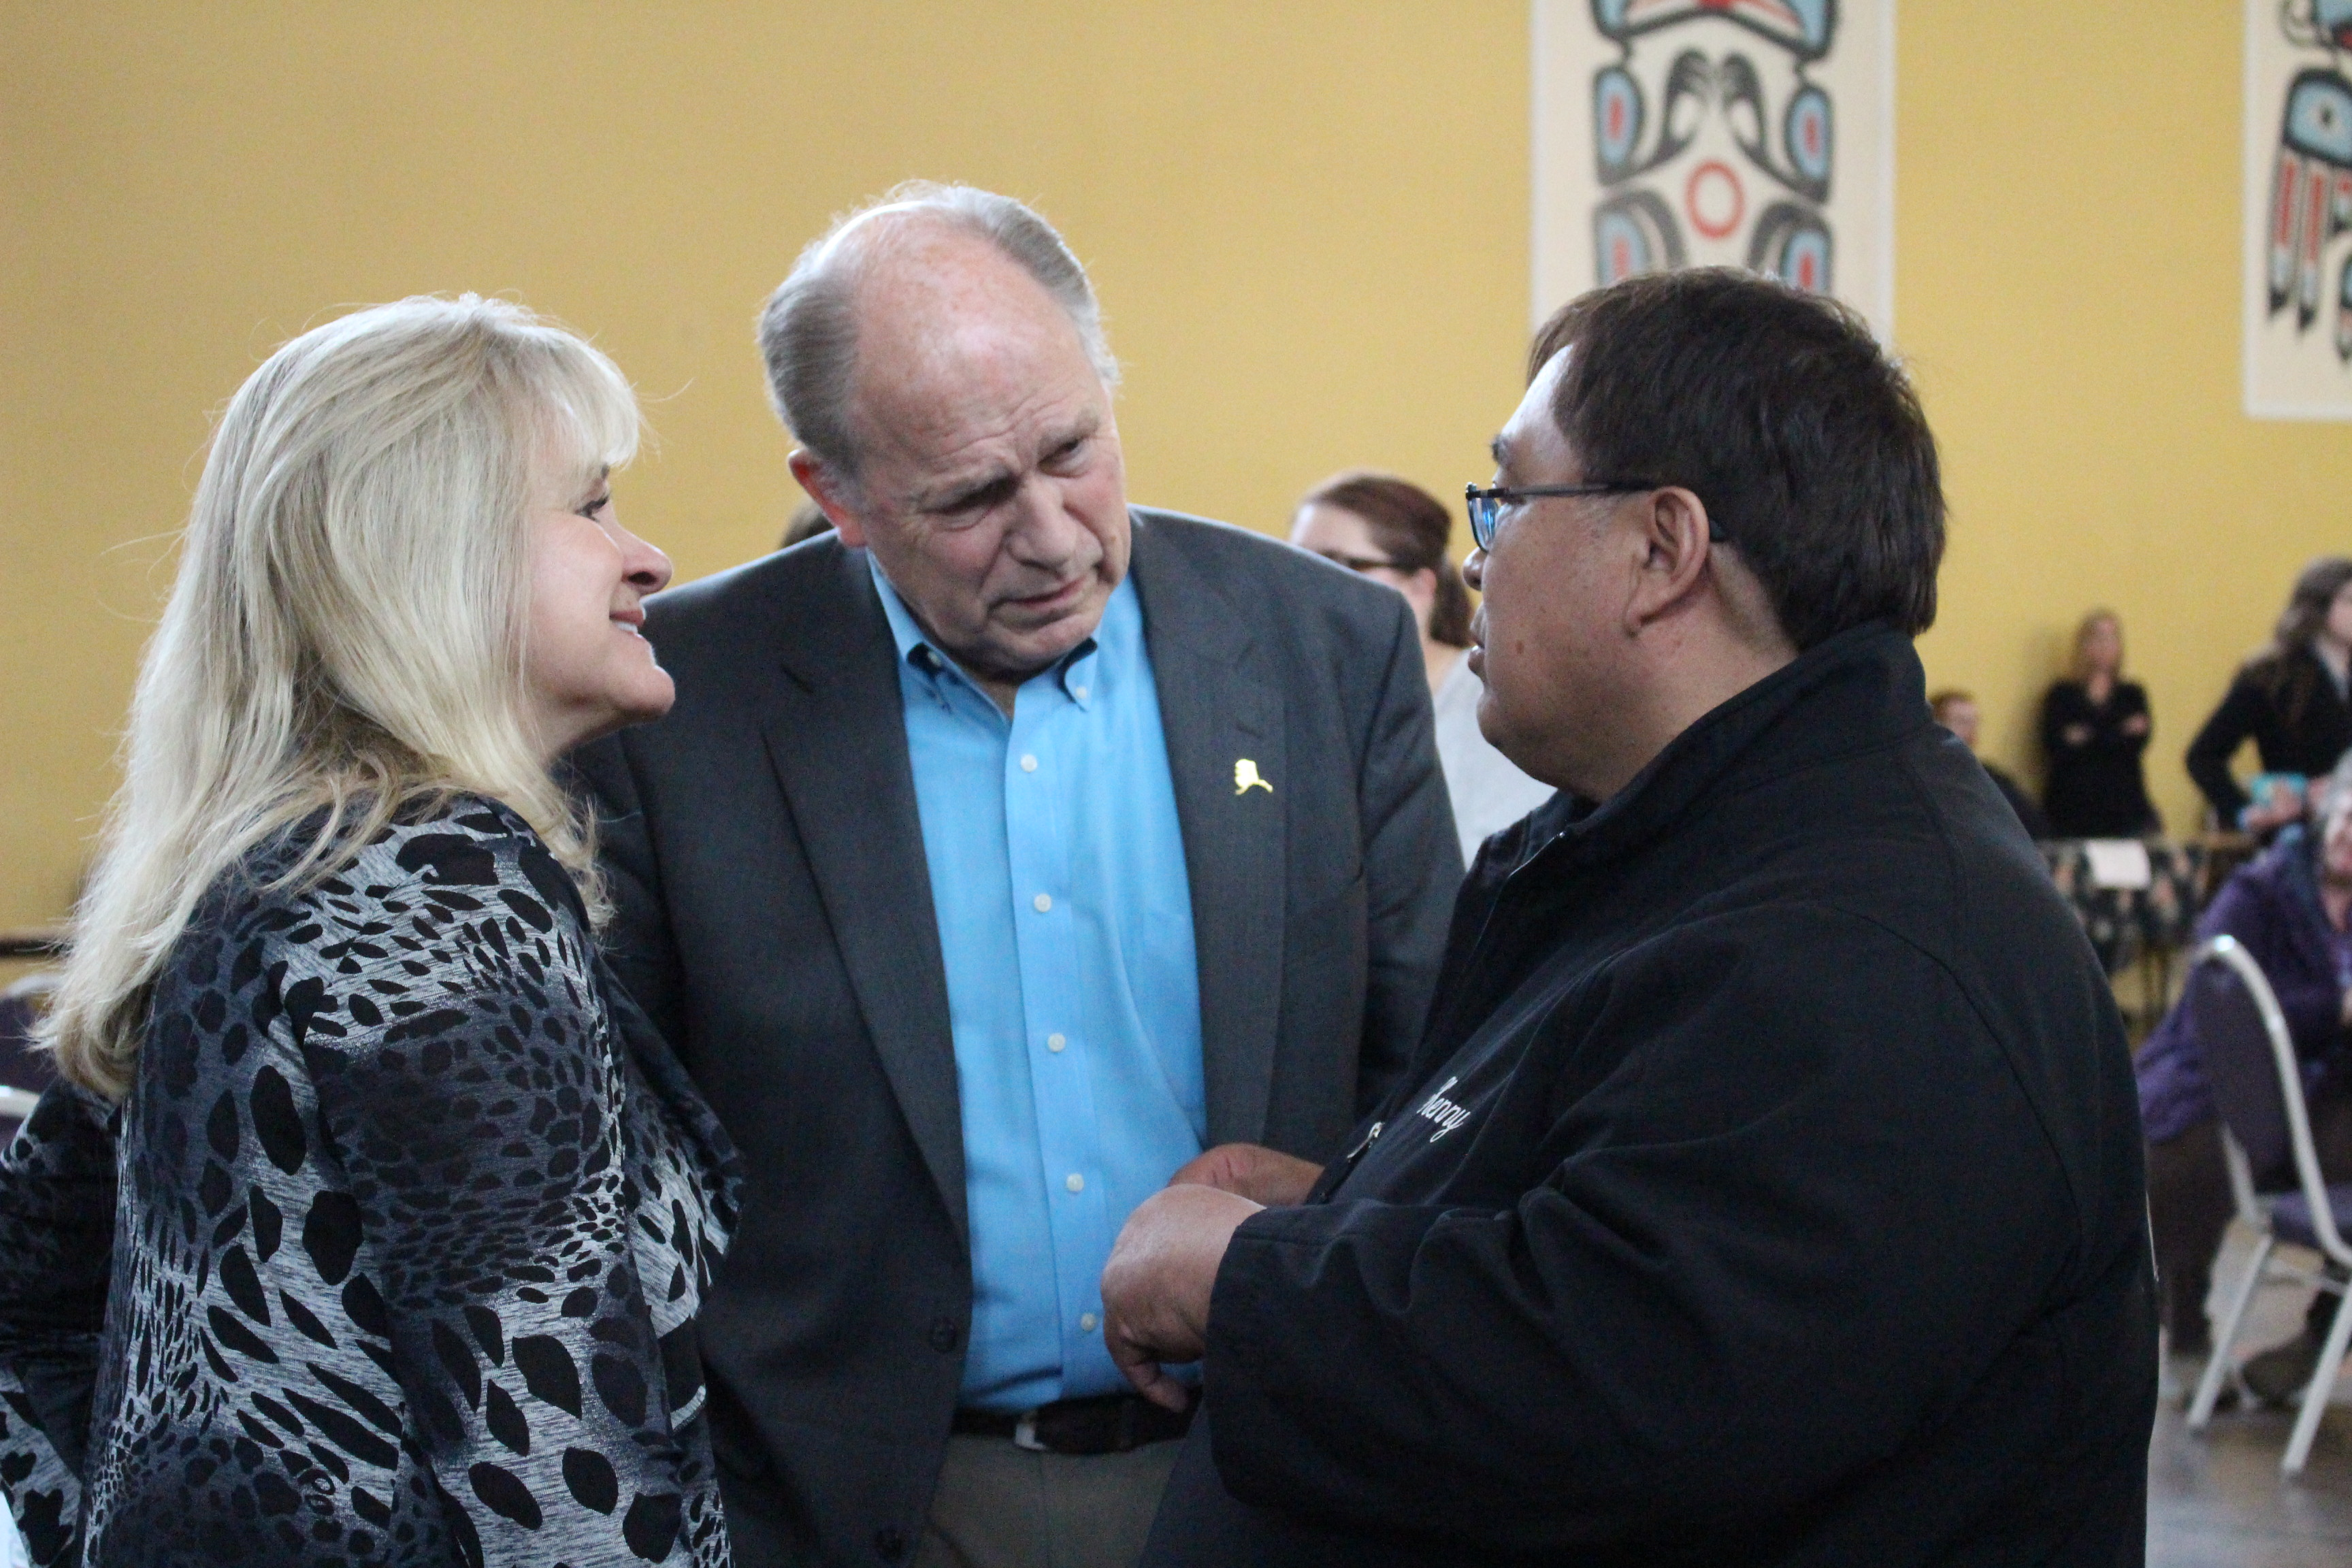 The governor and first lady Donna Walker talk to people at Hope, Not Heroin. (Photo by Elizabeth Jenkins/KTOO)